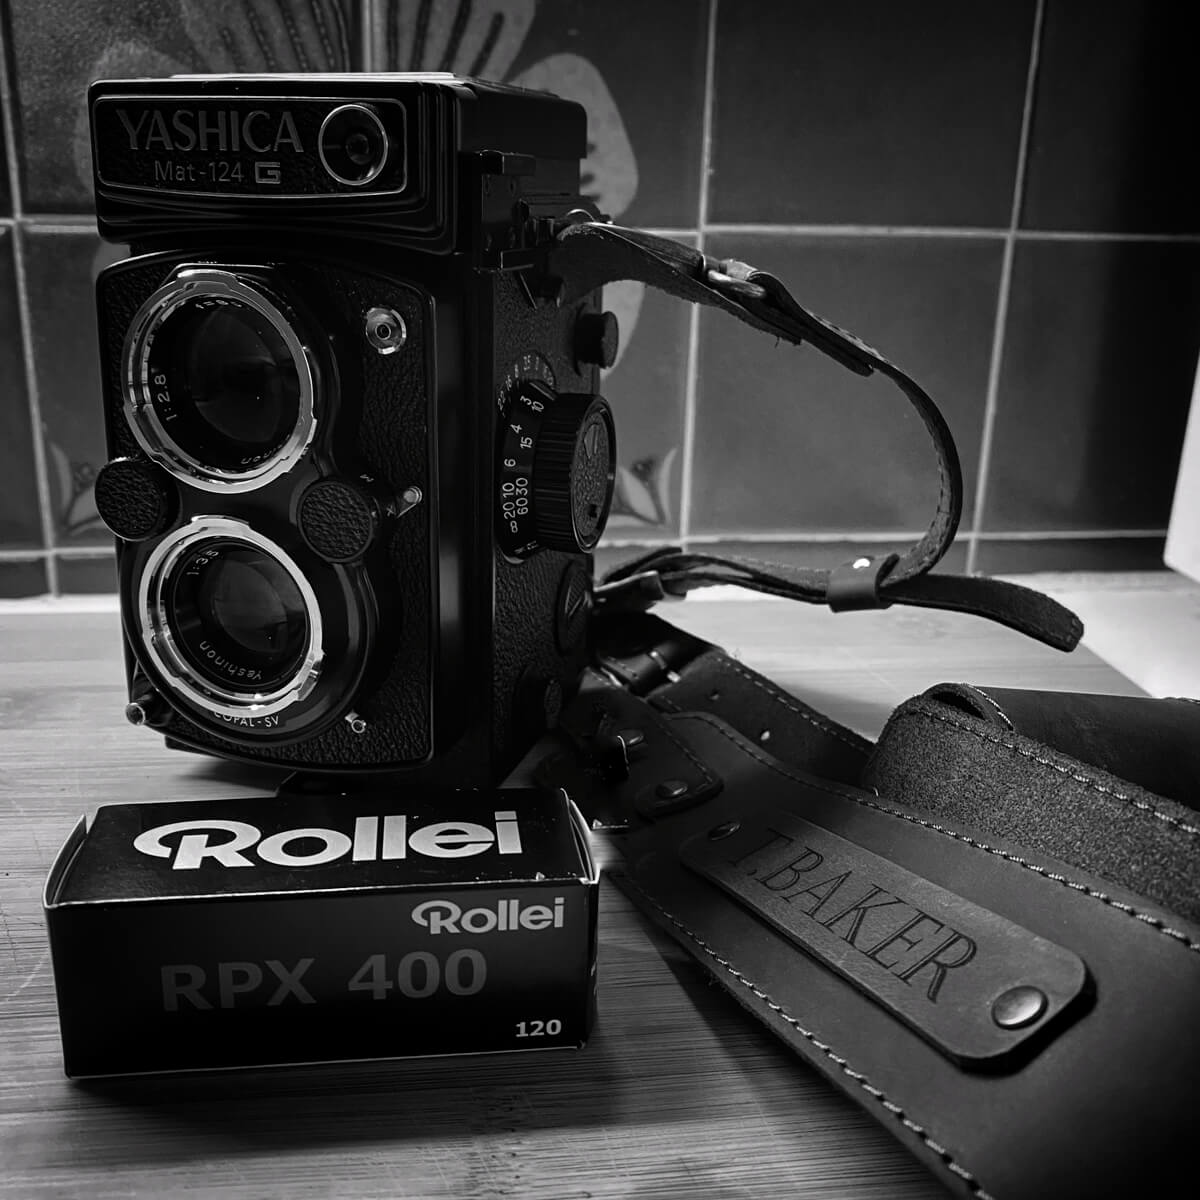 Rollei RPX 400 and a Yashica Mat-124G, Tim Baker